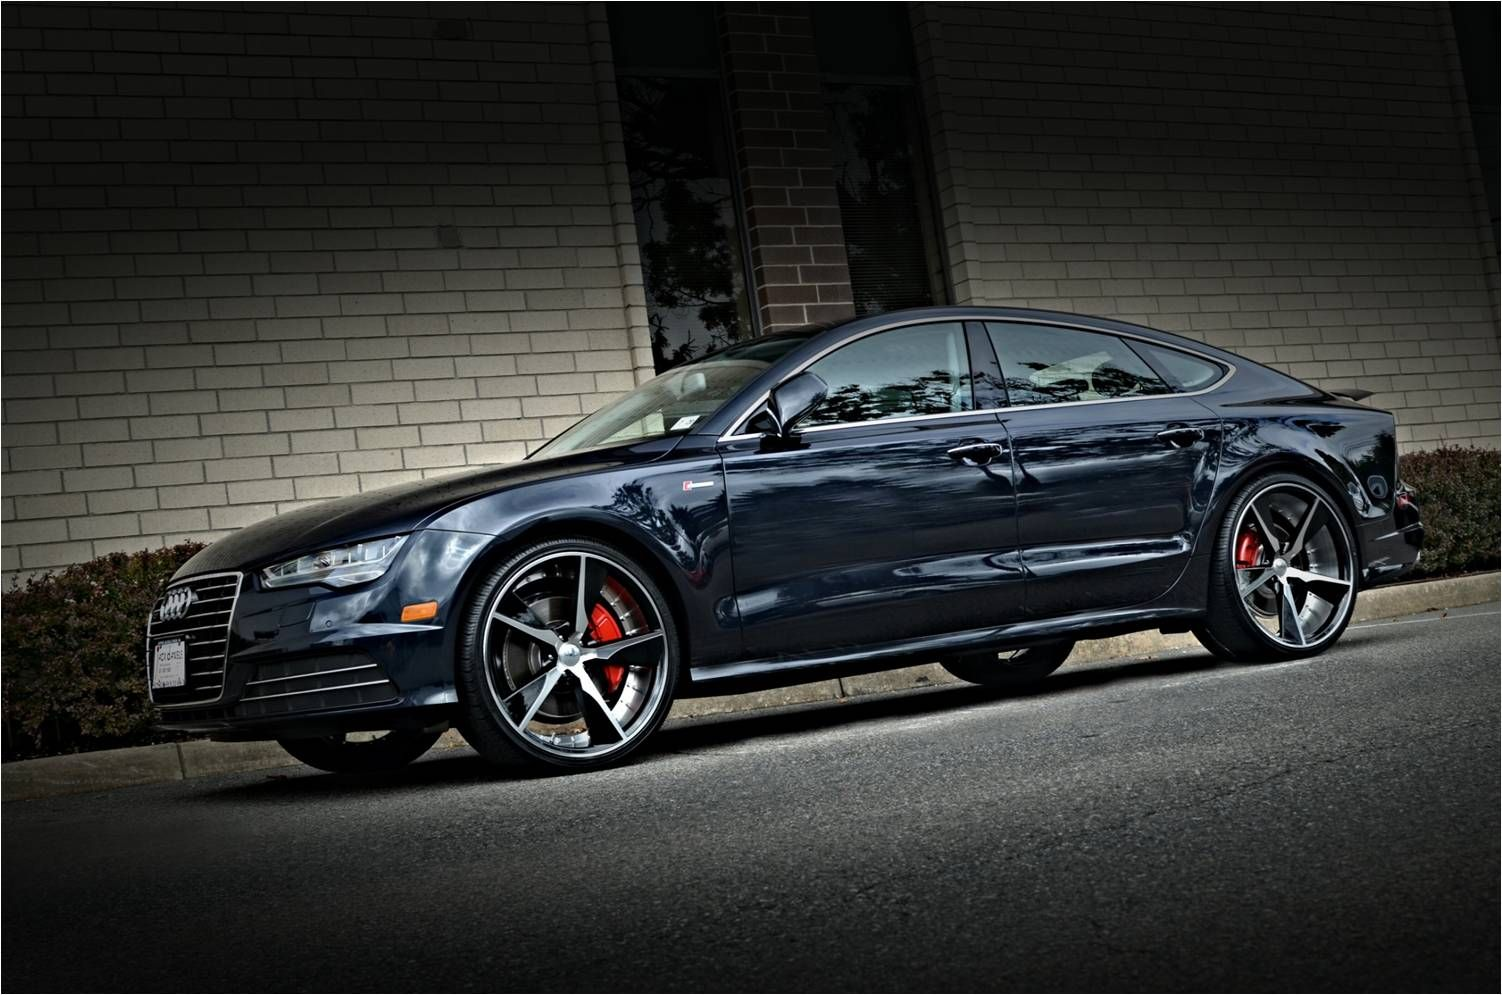 22 Inch Wheels Exclusively Done By Jackdanielsmotorsports Audi A7 Avtomobil